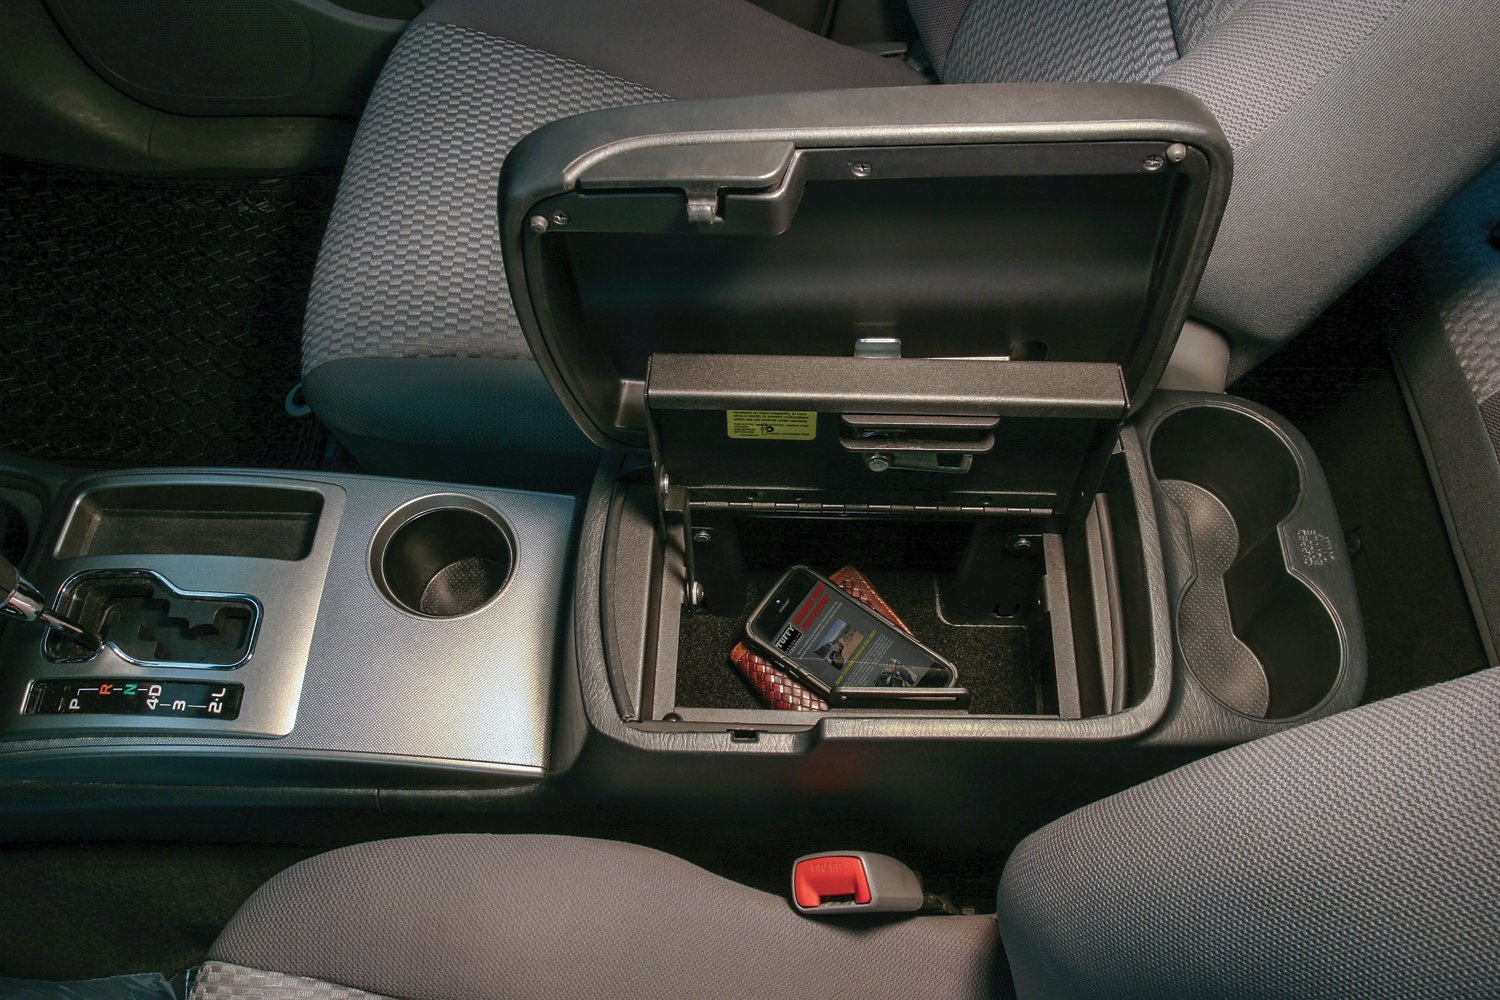 Tuffy 314-01 Console Insert for 05-15 Toyota Tacoma with Bucket Seats